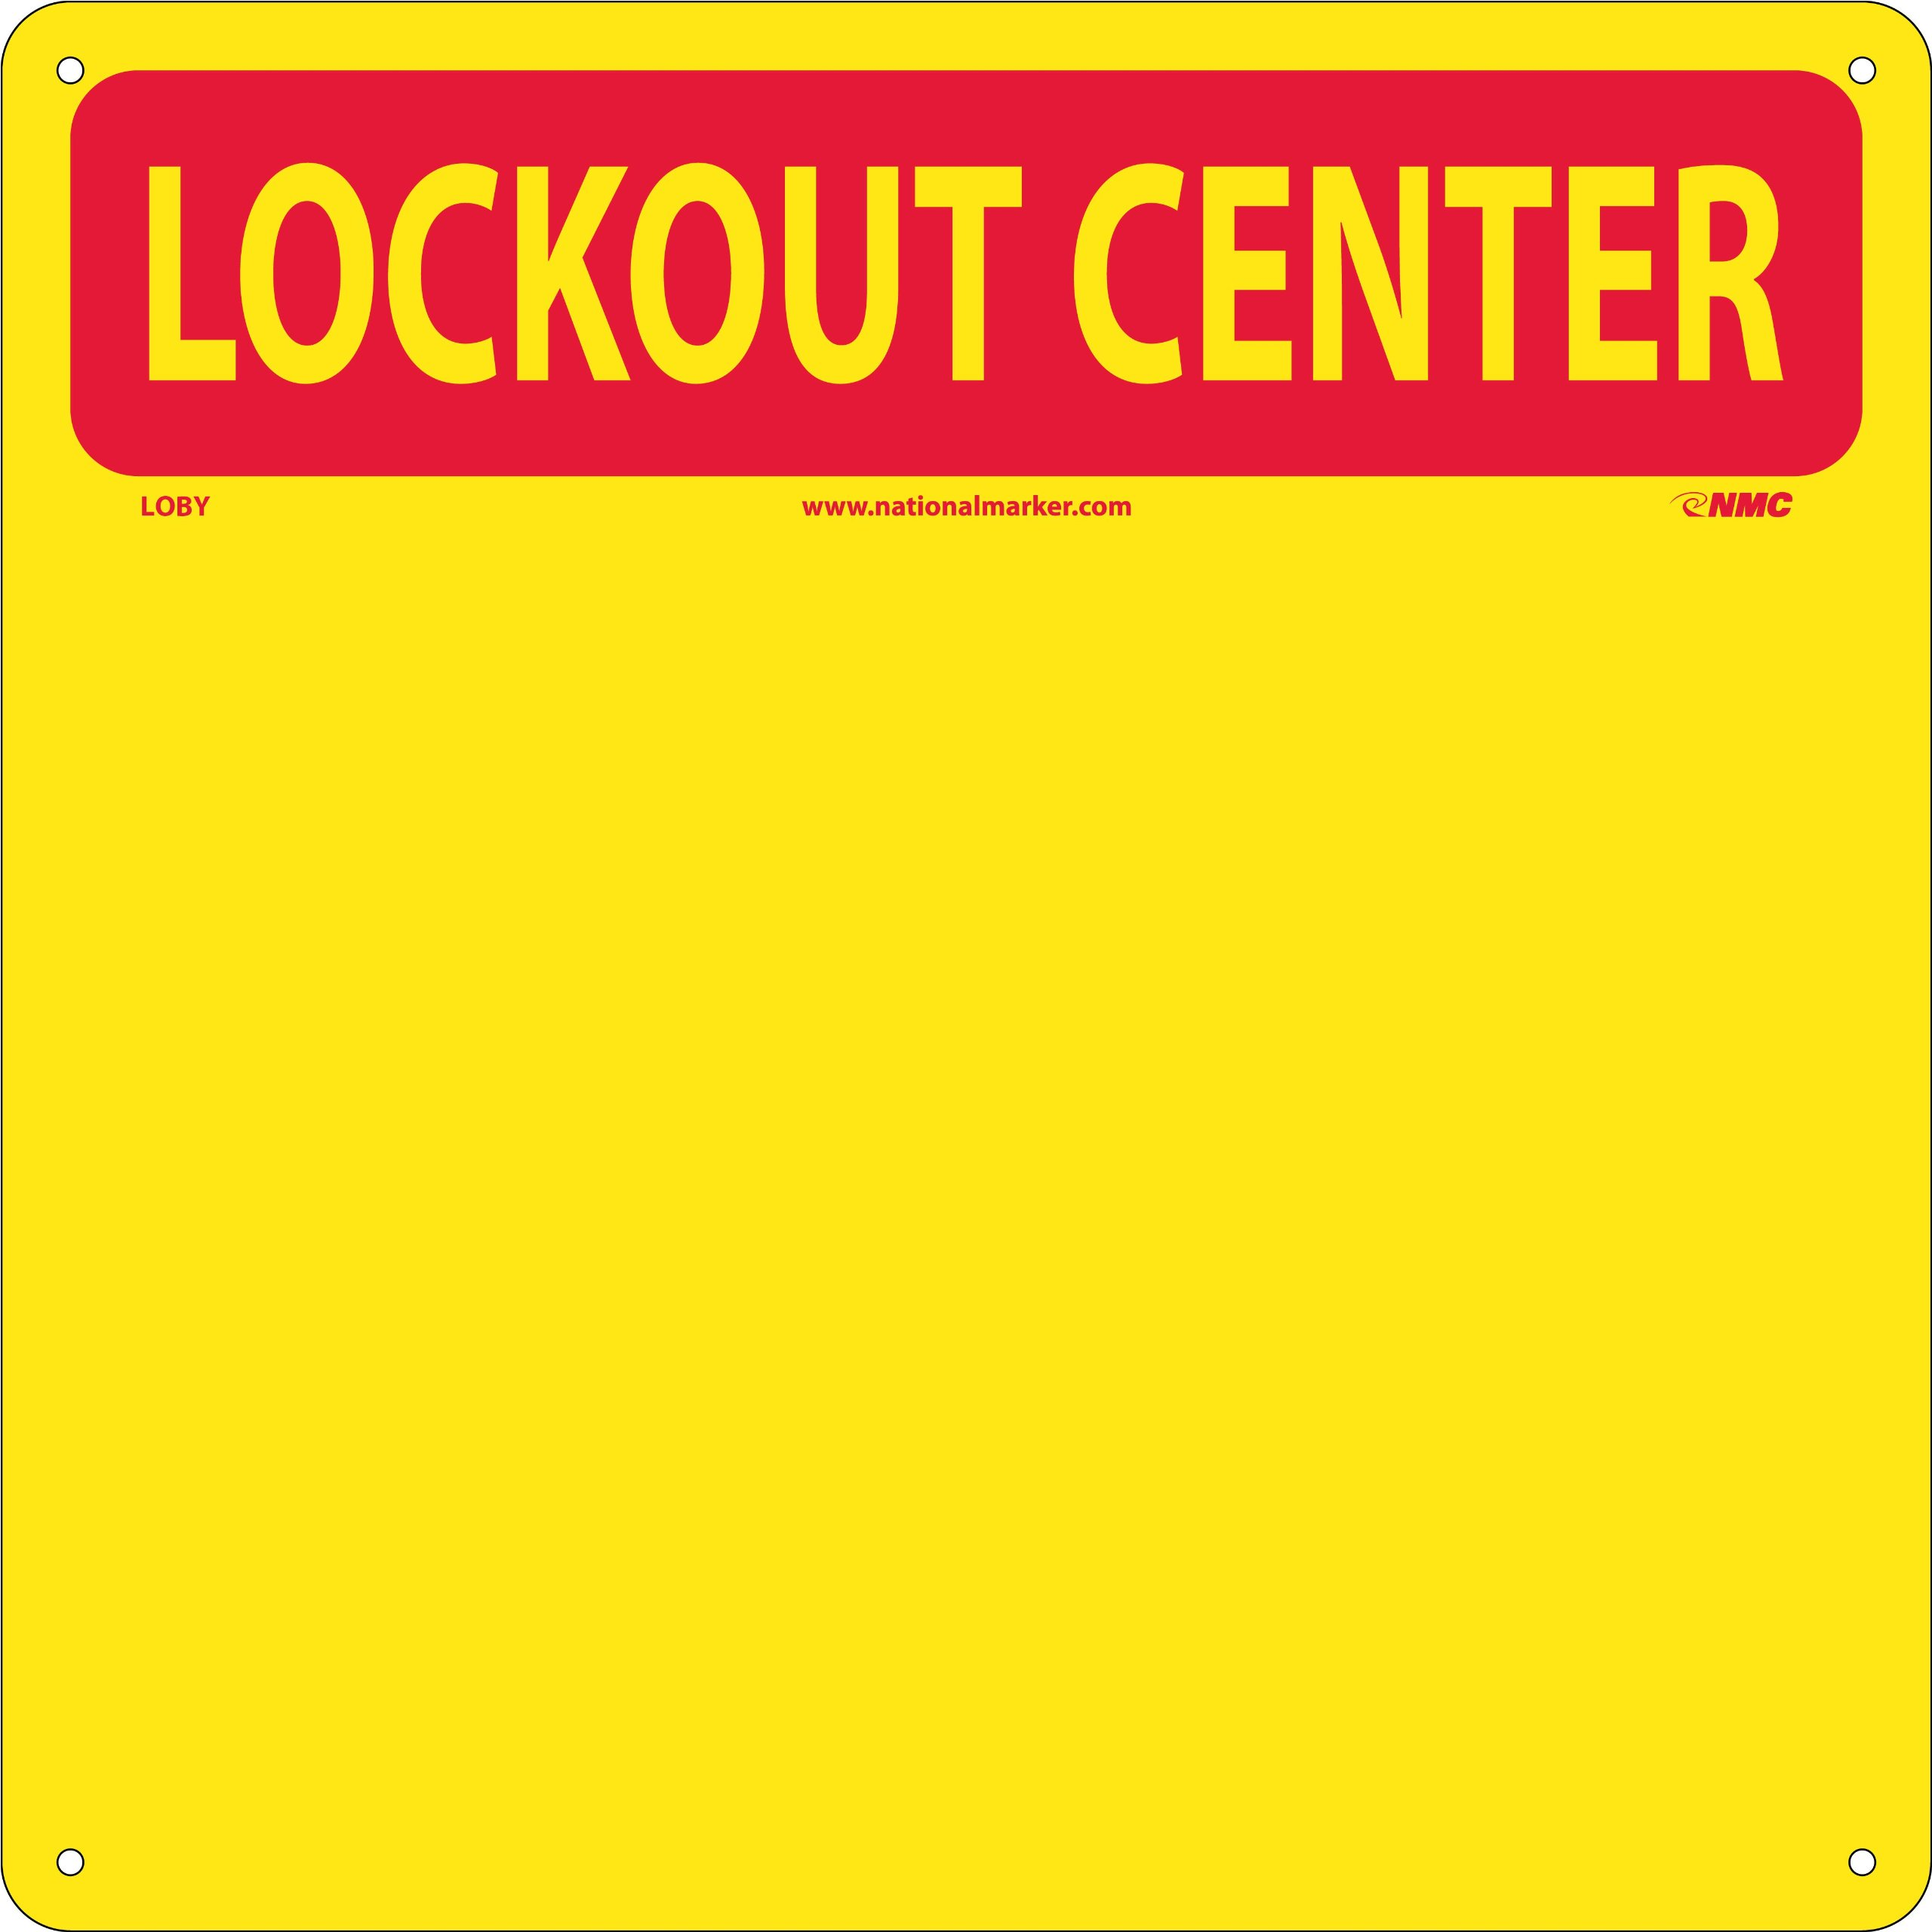 NMC LOBY Lockout Tagout Center Kit with Hooks, 14'' Width x 14'' Height, Red on Yellow